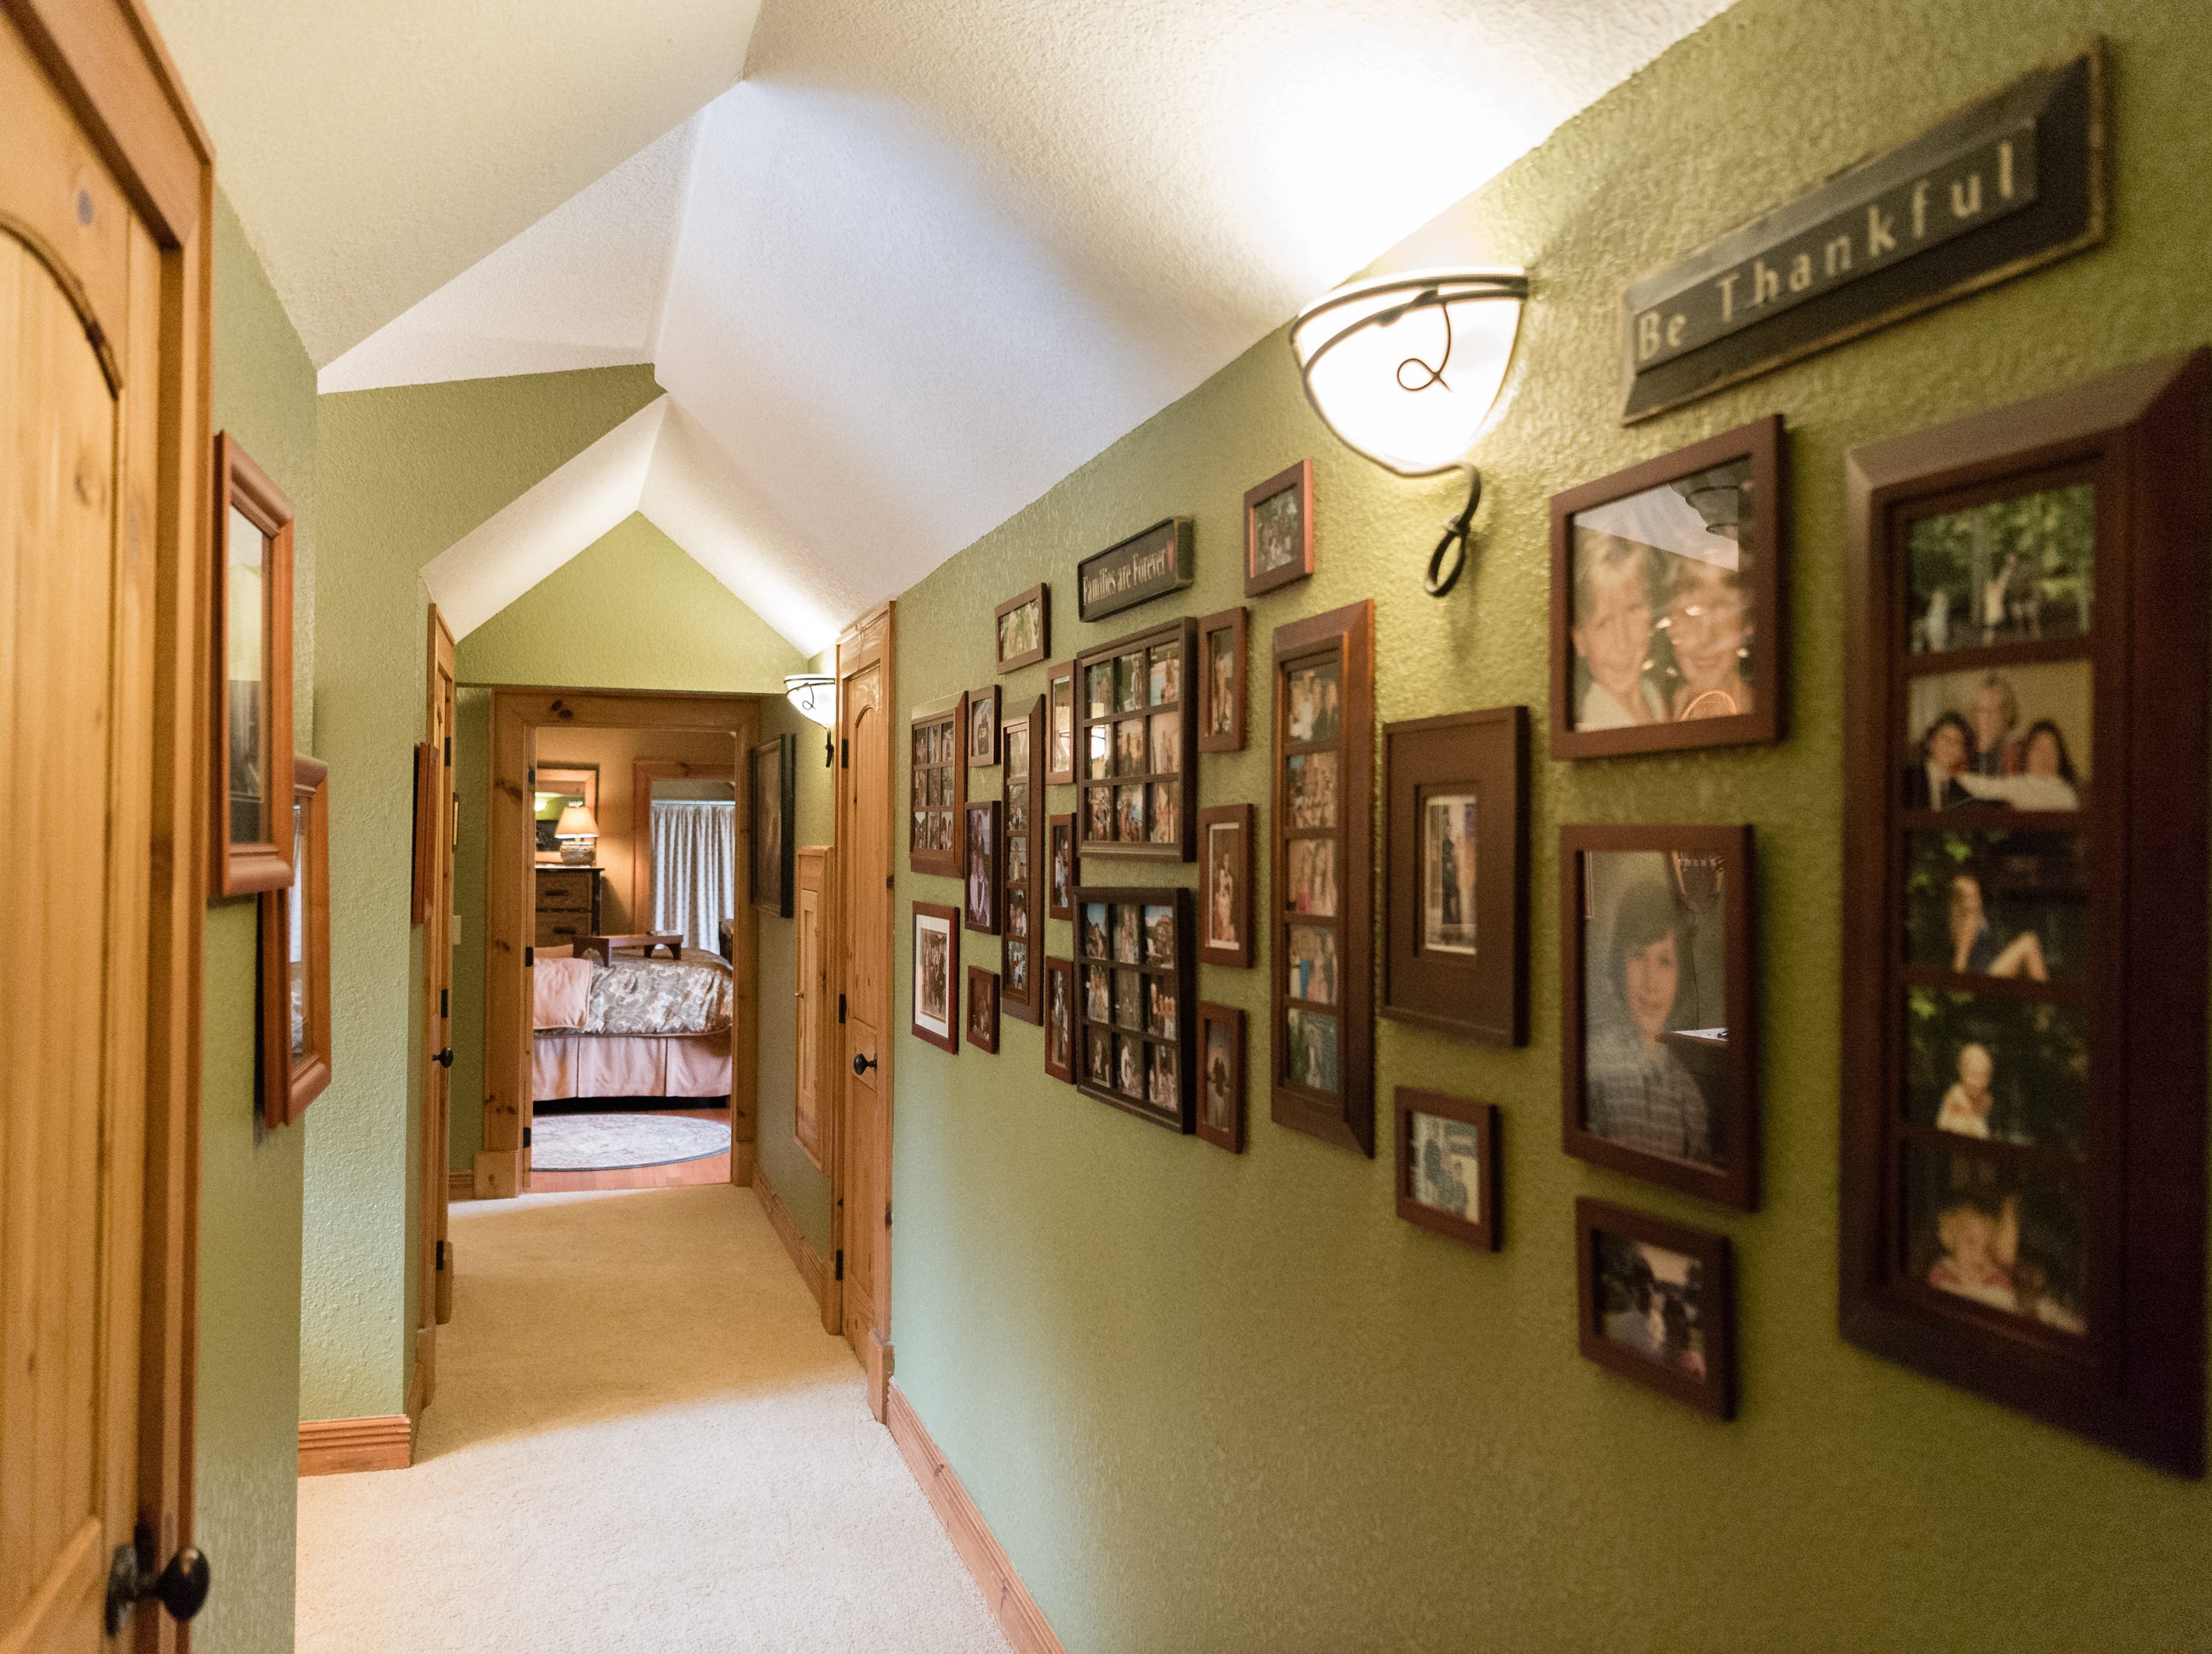 A hallway on the third floor of Dan and Belle Fangmeyer's log cabin in Waynesville.